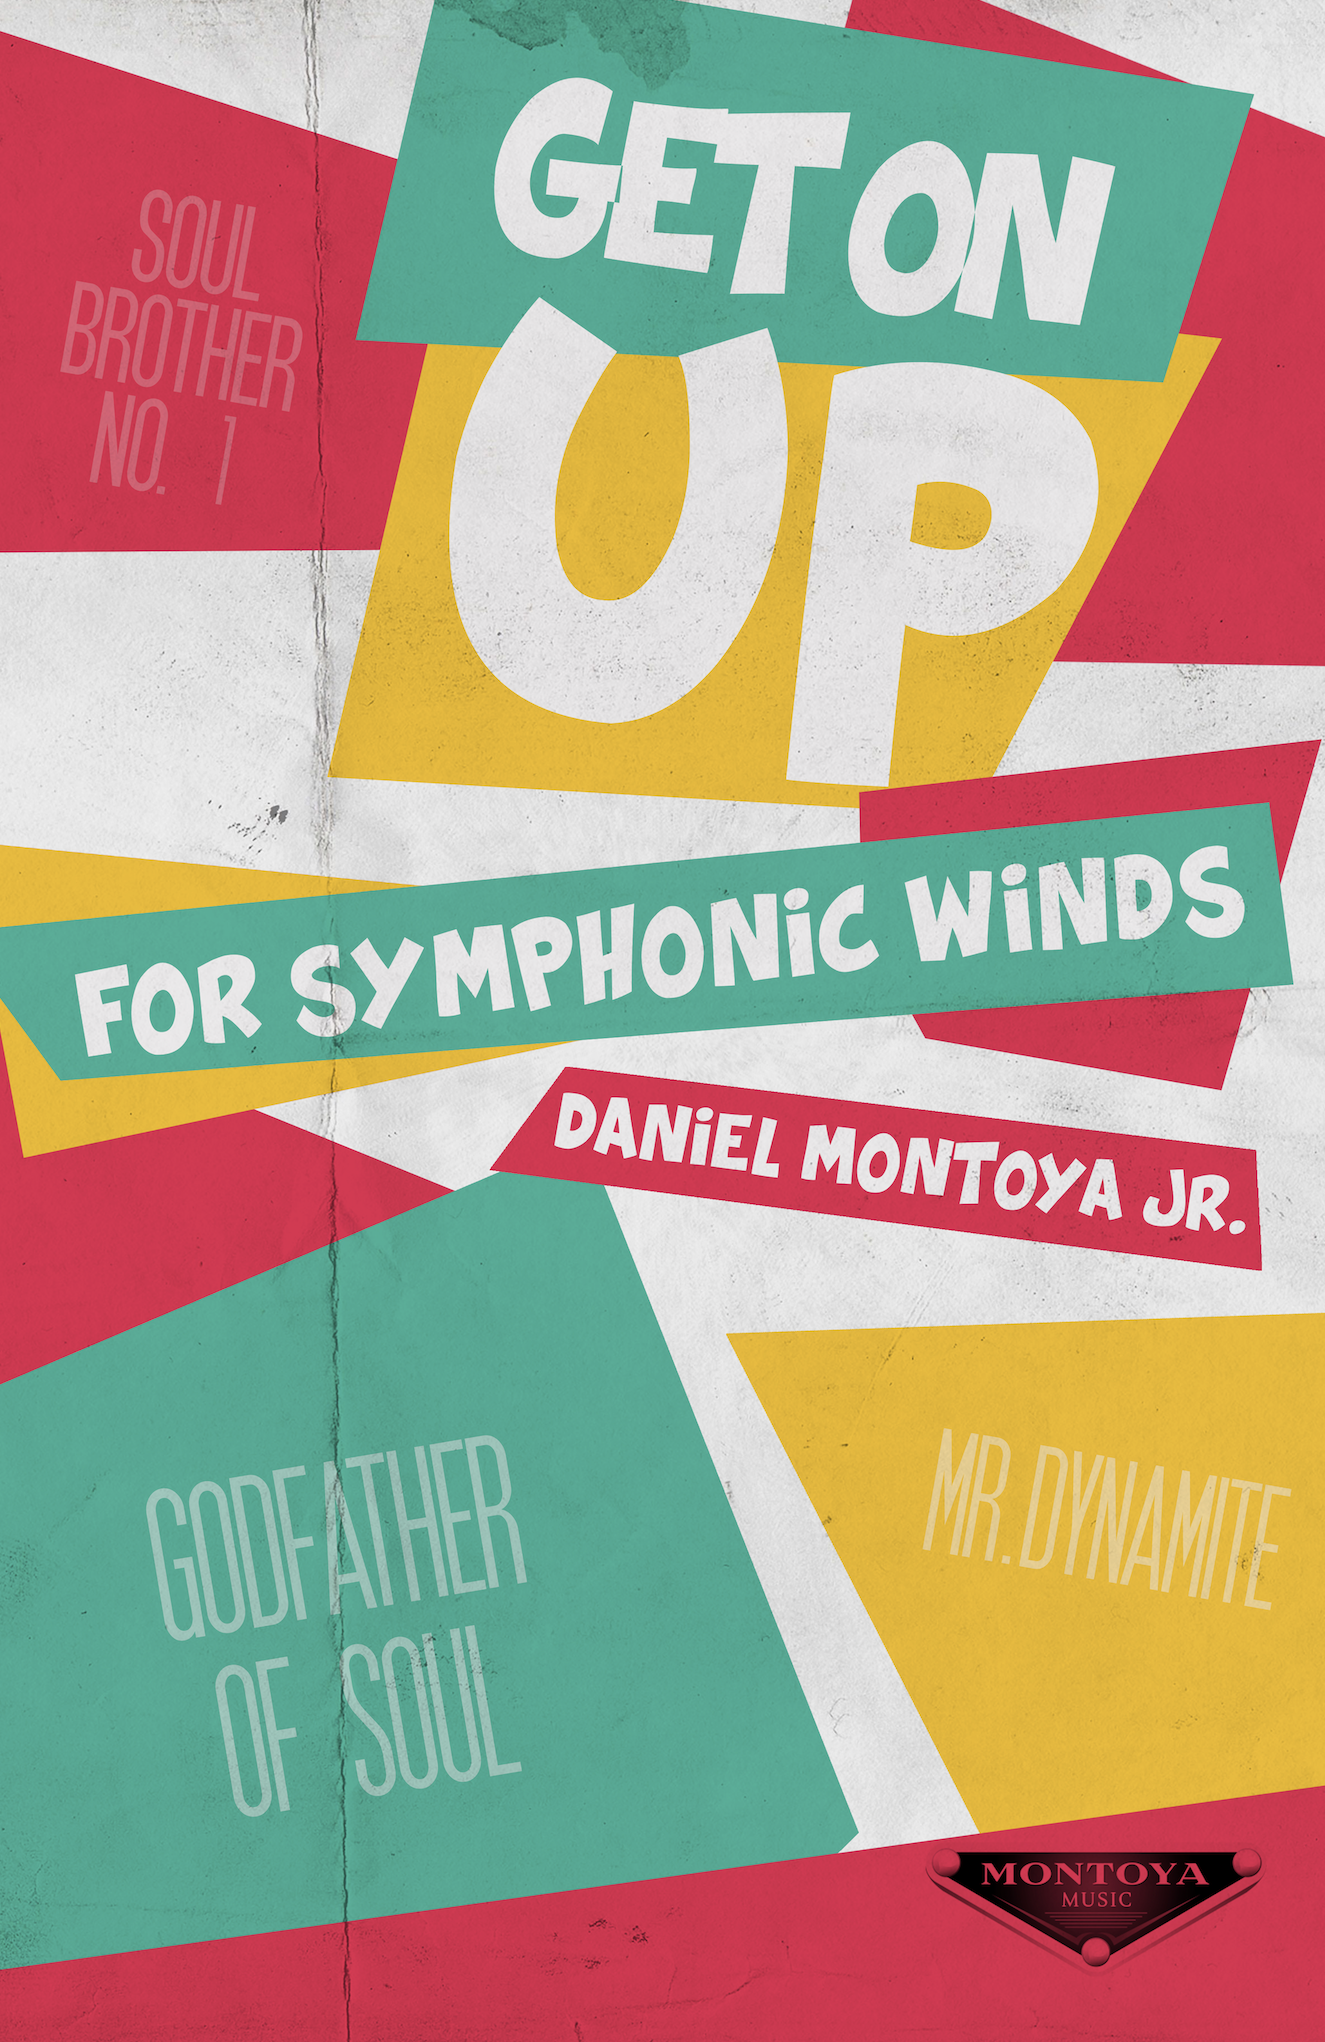 Get On Up by Daniel Montoya Jr.